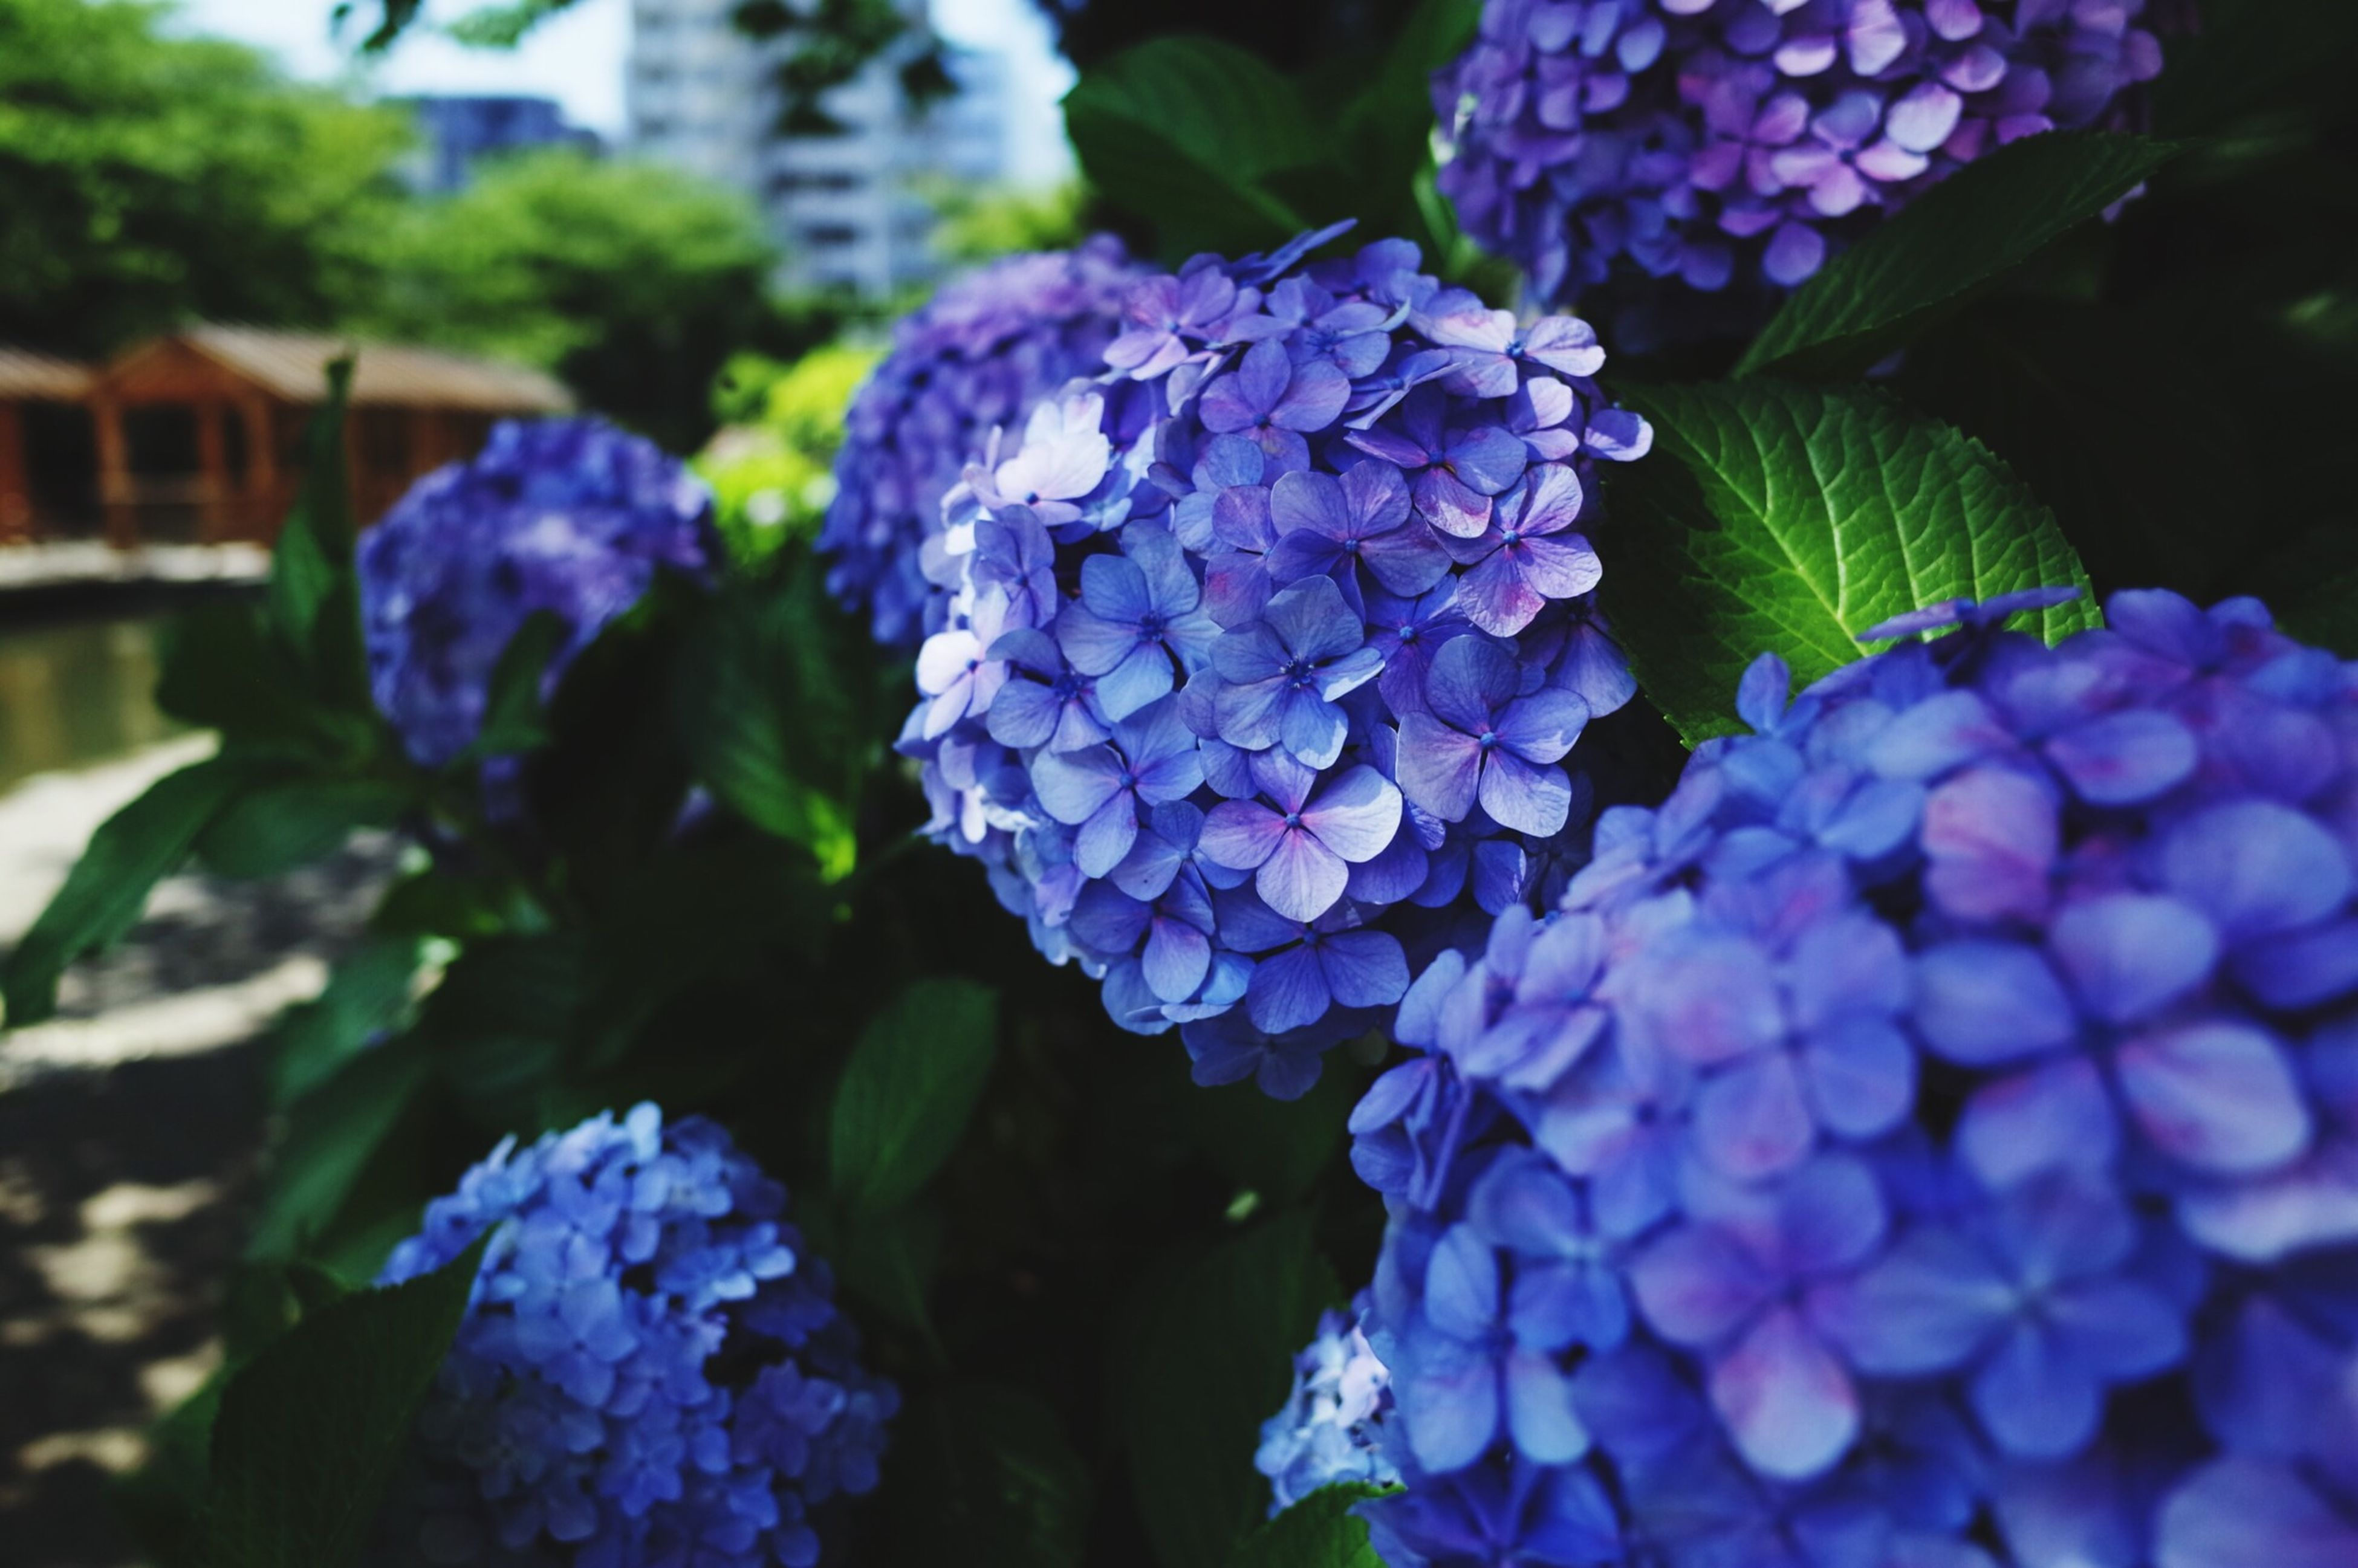 flower, purple, freshness, fragility, petal, growth, beauty in nature, flower head, plant, close-up, blooming, hydrangea, nature, focus on foreground, in bloom, leaf, blue, park - man made space, outdoors, bunch of flowers